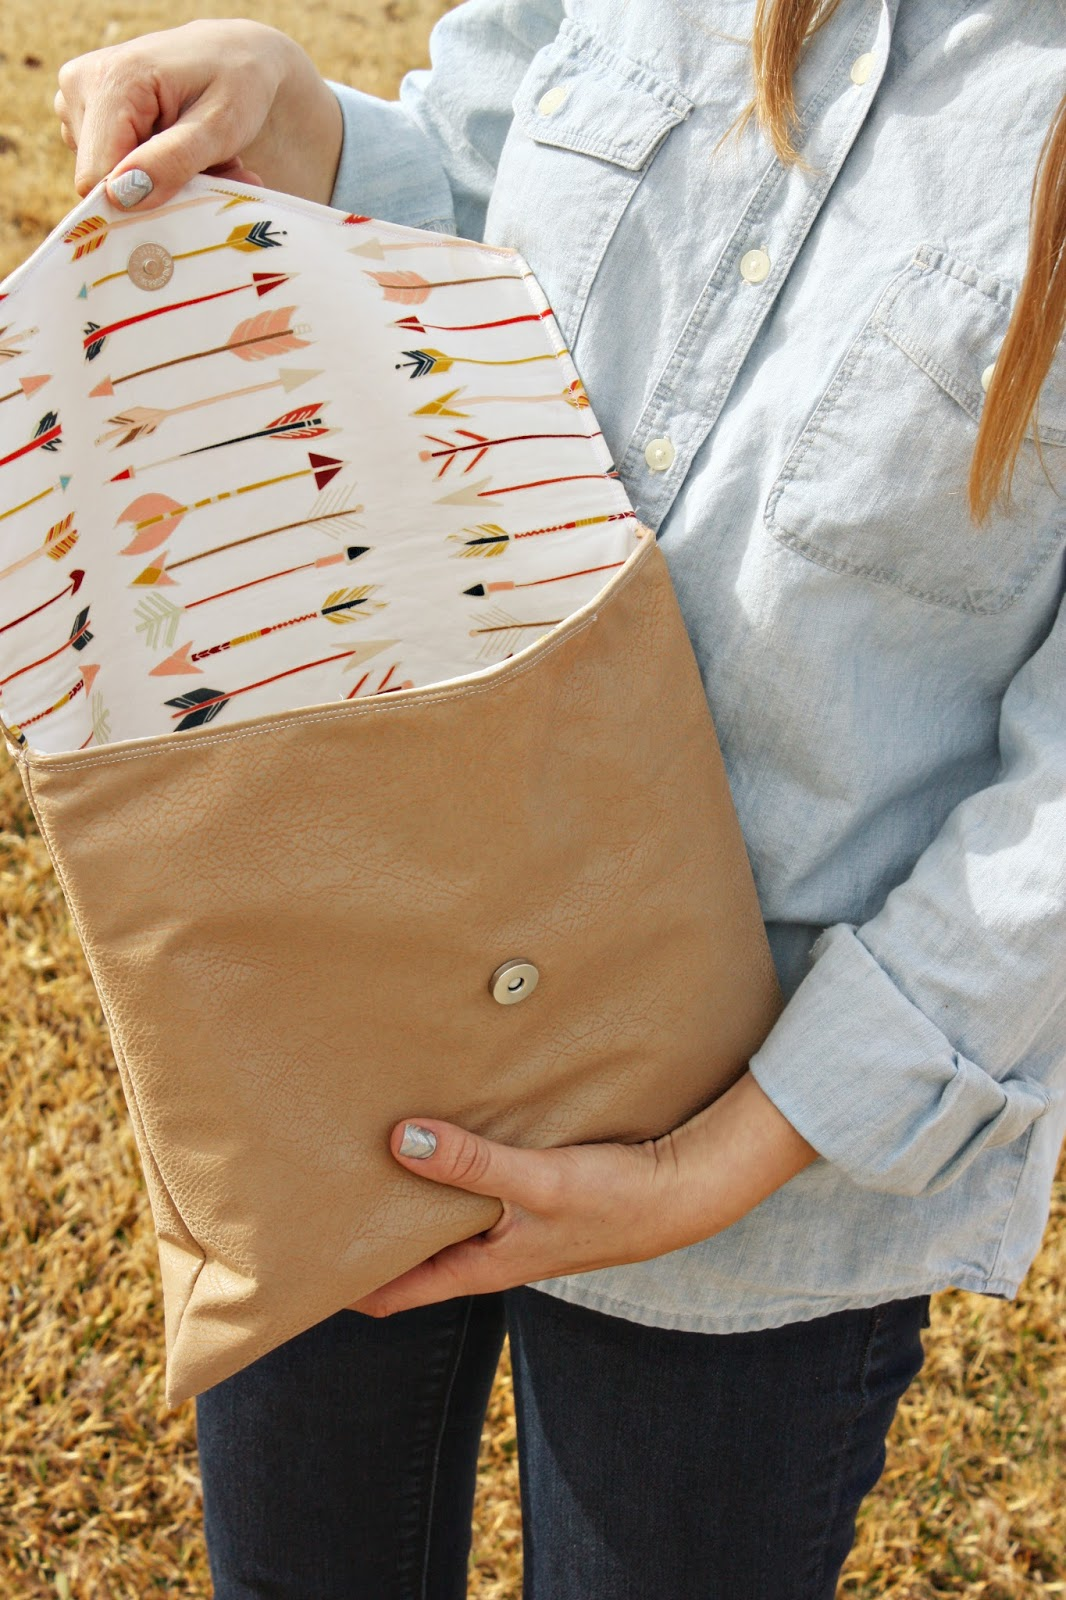 Chic Envelope Clutch from DIY Galentine's Day Gift Ideas Round Up || Awesome with Sprinkles